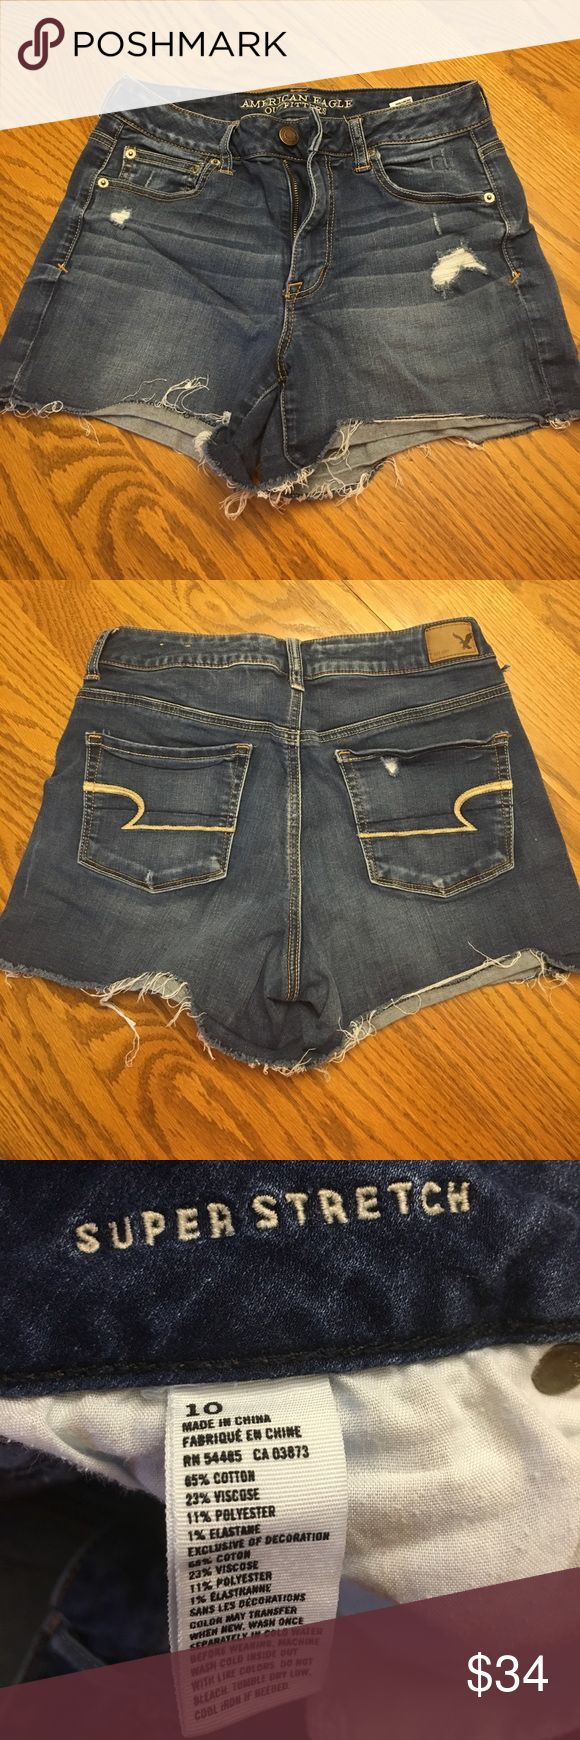 AE jean shorts Super soft denim America Eagle denim cut-off shorts. Perfect for summer! American Eagle Outfitters Shorts Jean Shorts